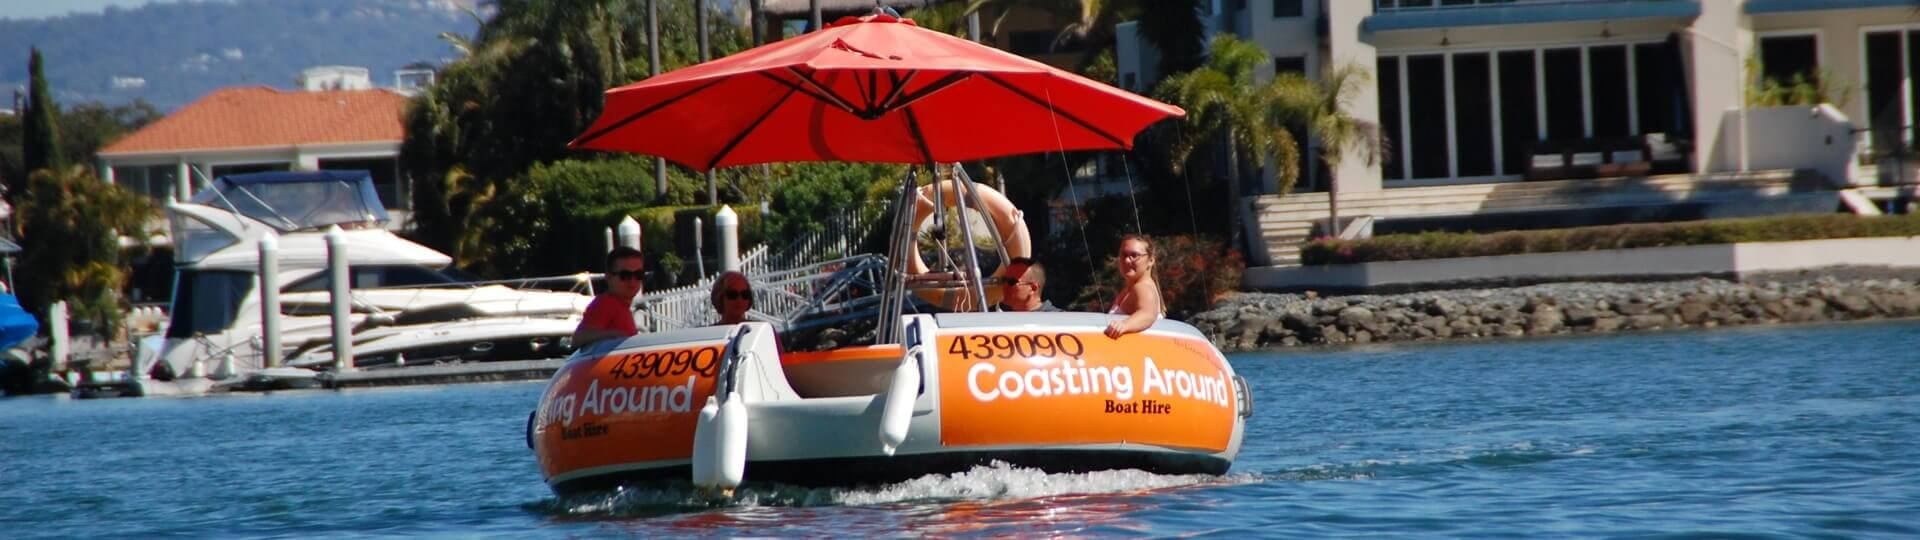 "How old do I have to be to rent a ""Coasting Around"" BBQ Boat?"